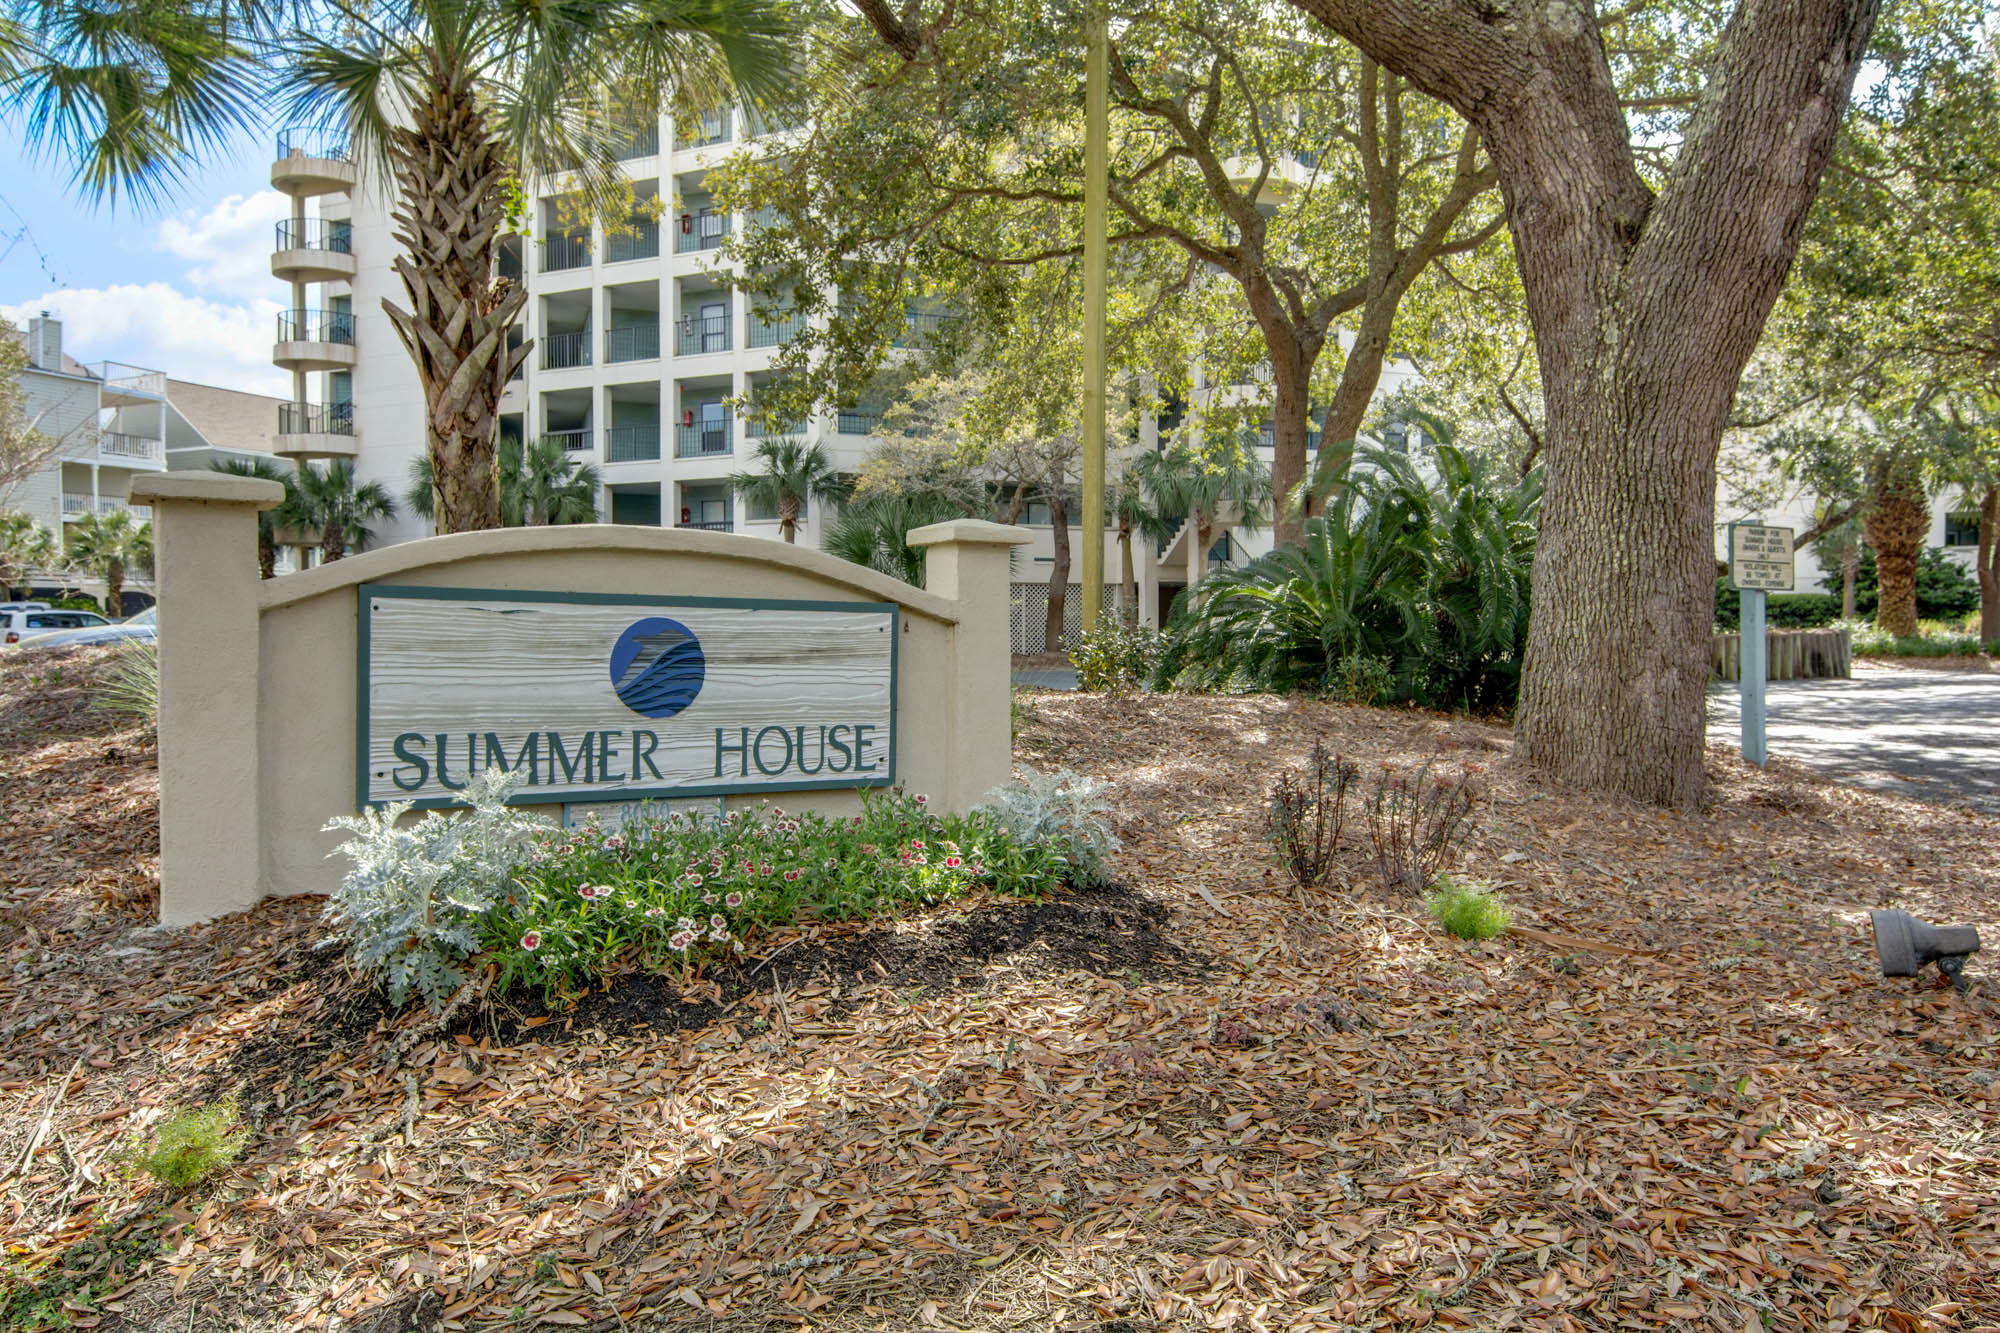 Wild Dunes Homes For Sale - 210 Summerhouse, Isle of Palms, SC - 9